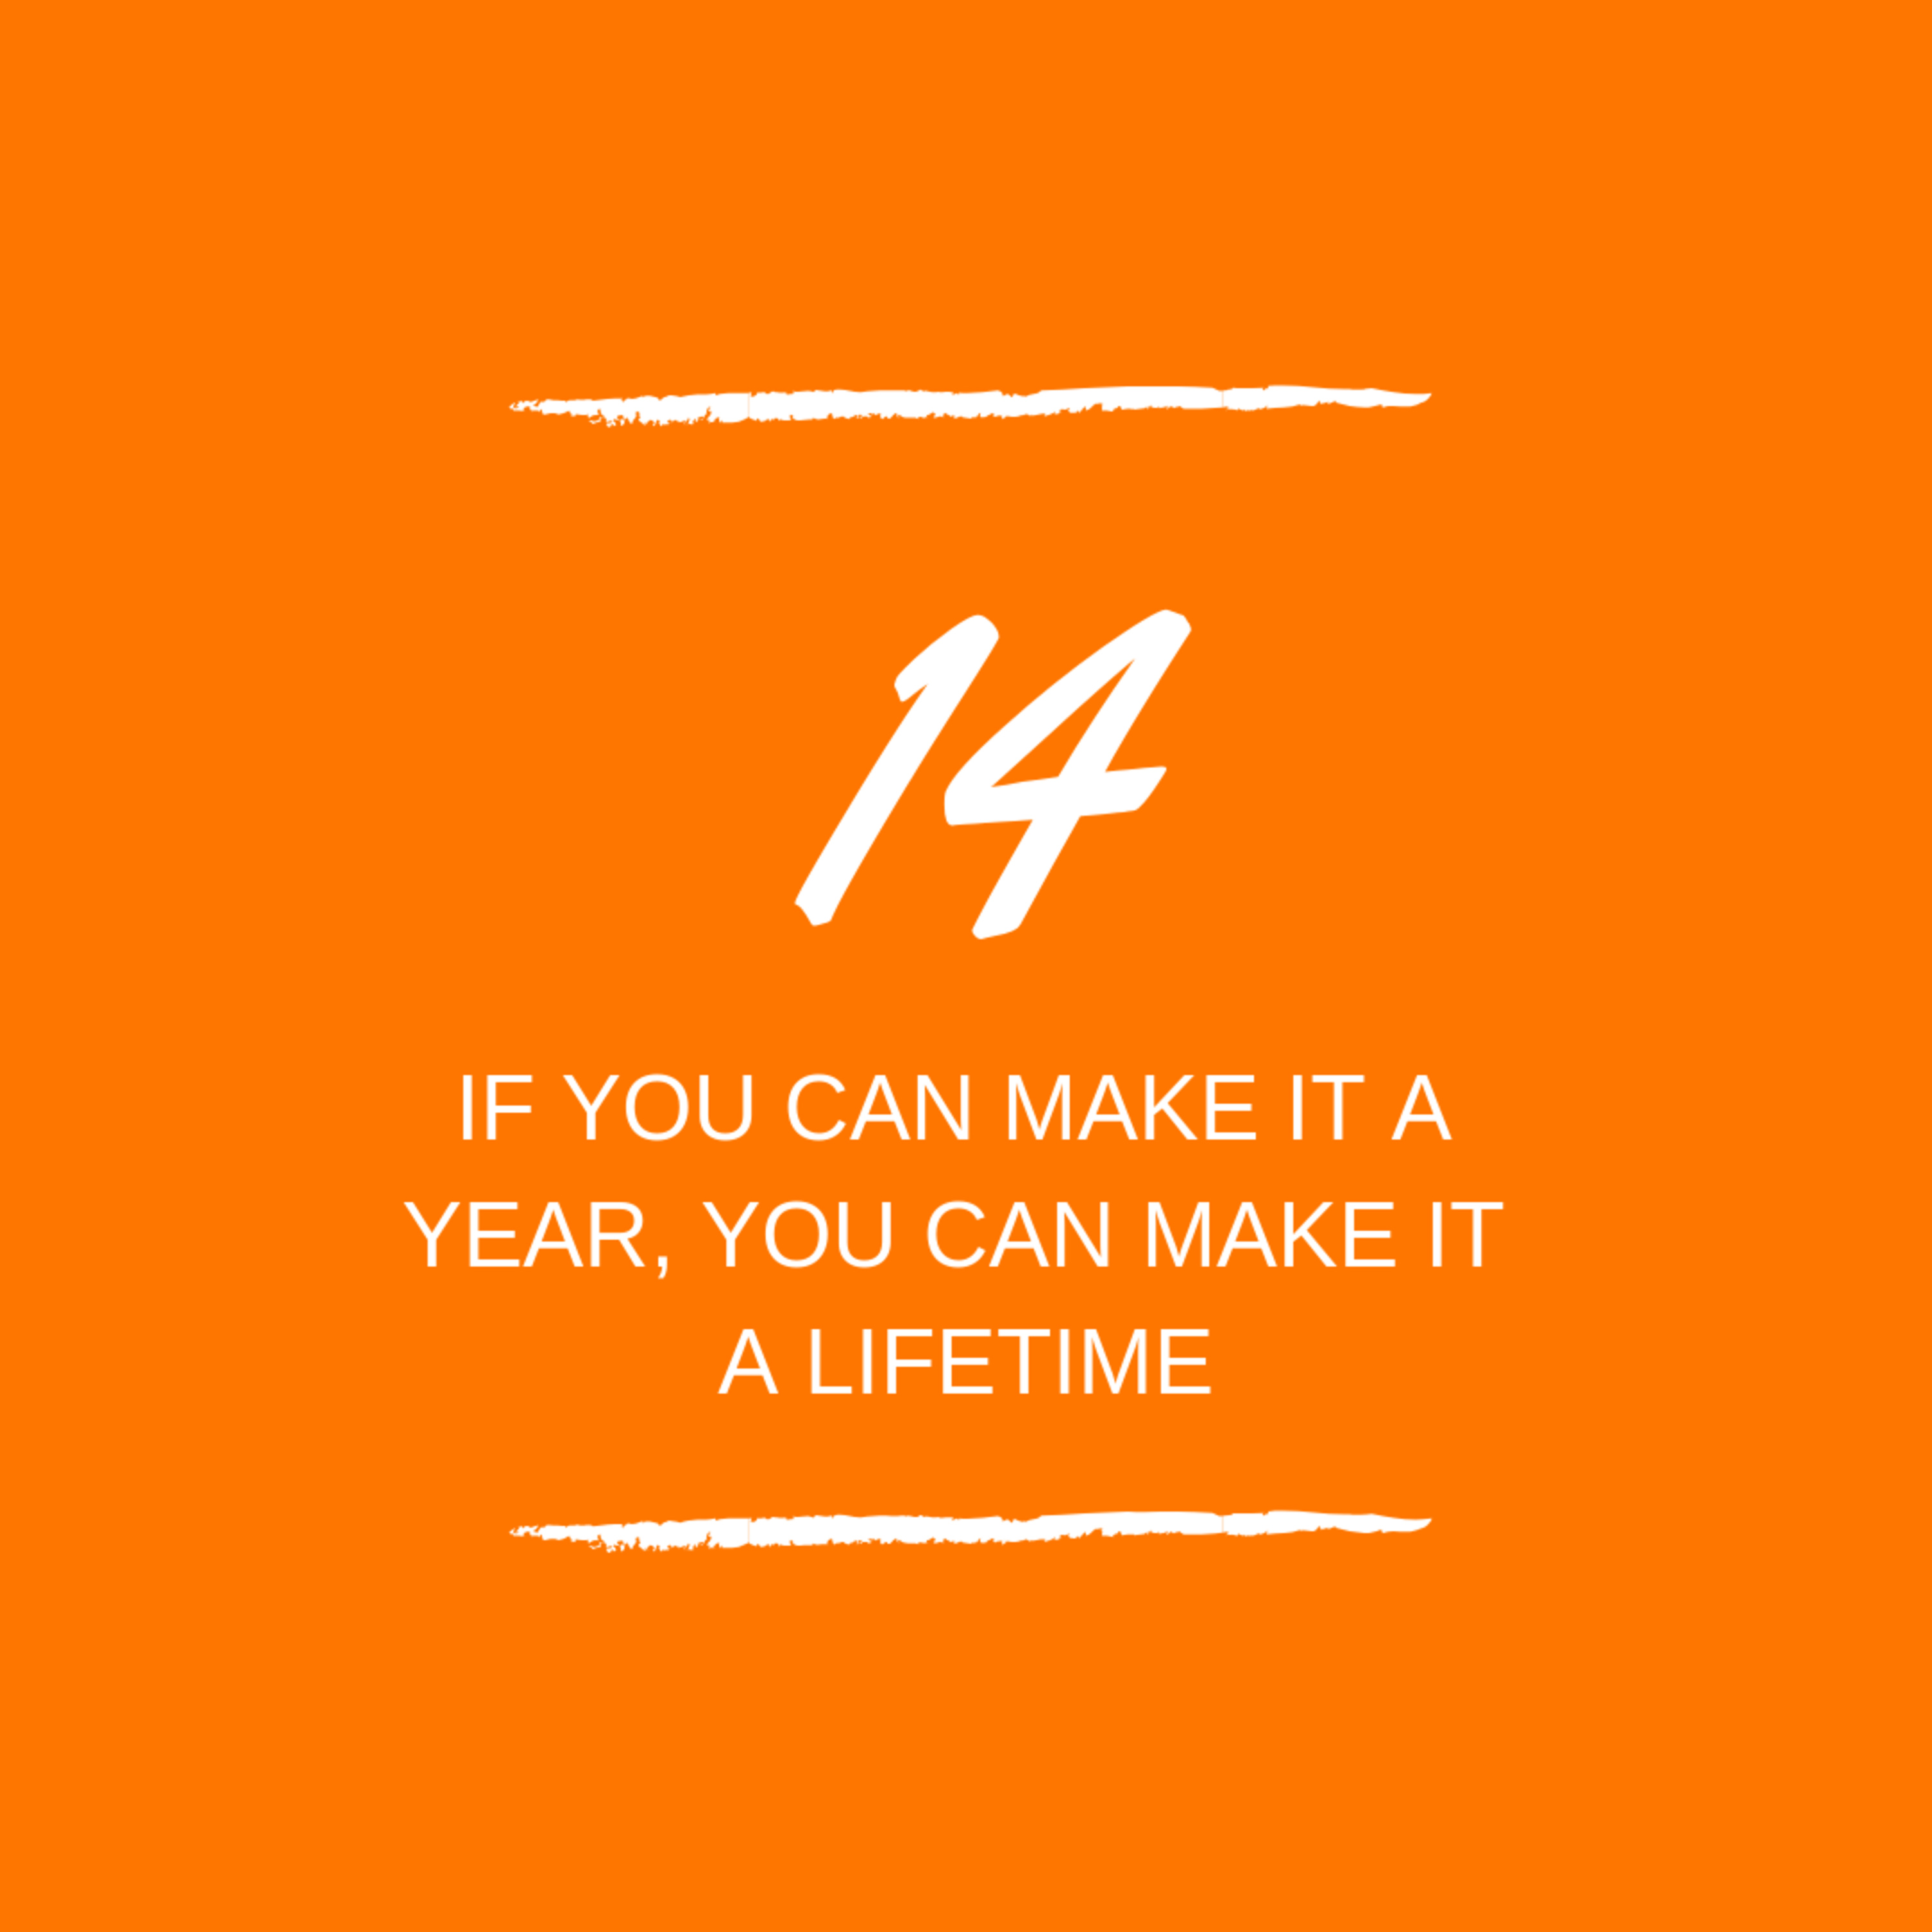 Day 14 : 📠 If you can make a year you can make a lifetime